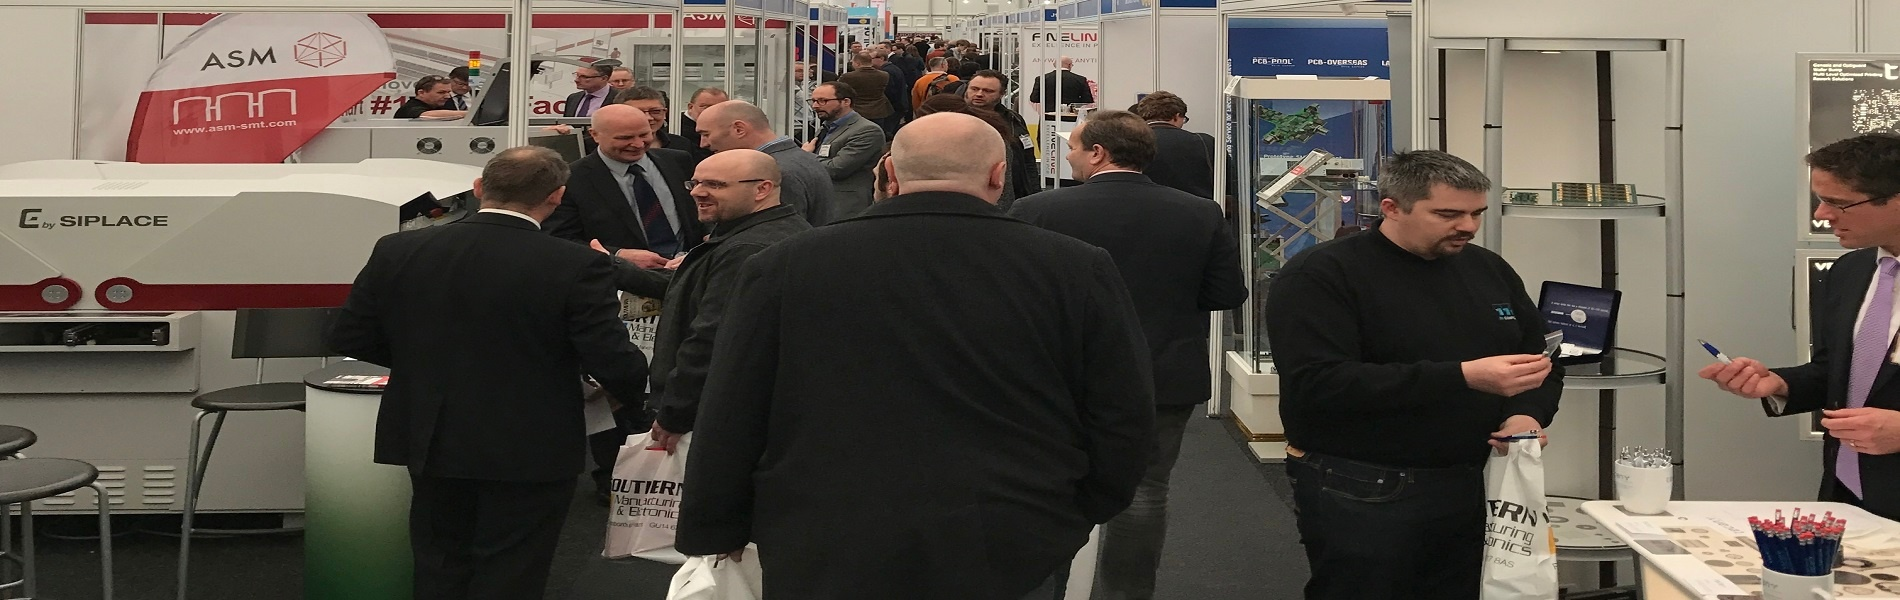 visitors attending a manufacturing trade show